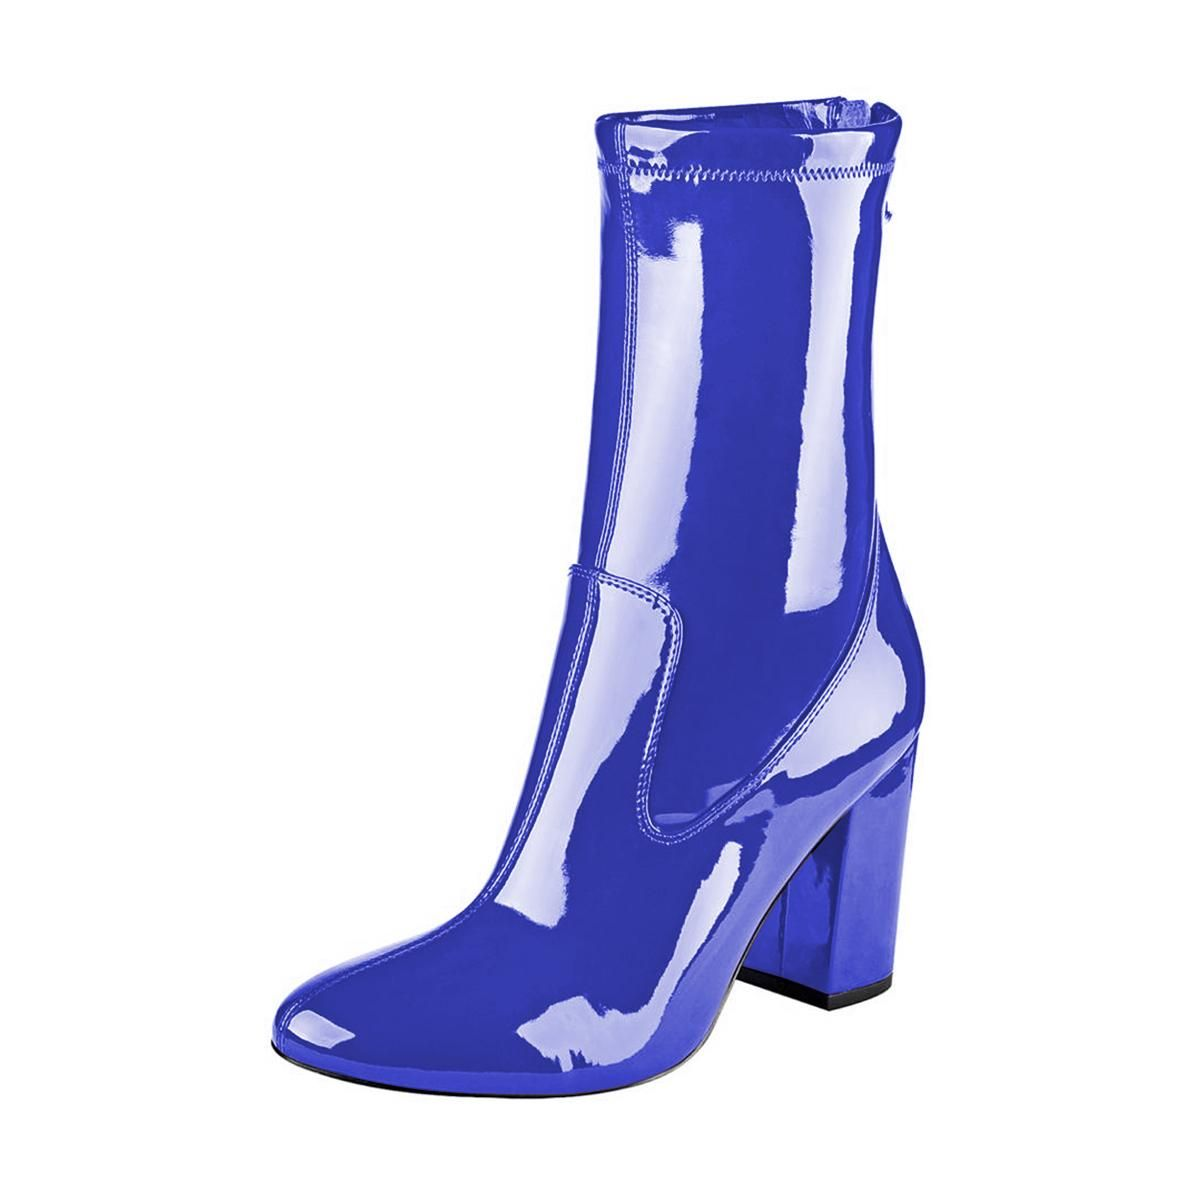 2554051c20a #FSJshoes - #FSJ Shoes Women's Royal Blue Patent Leather Chunky Heel Boots  - AdoreWe.com